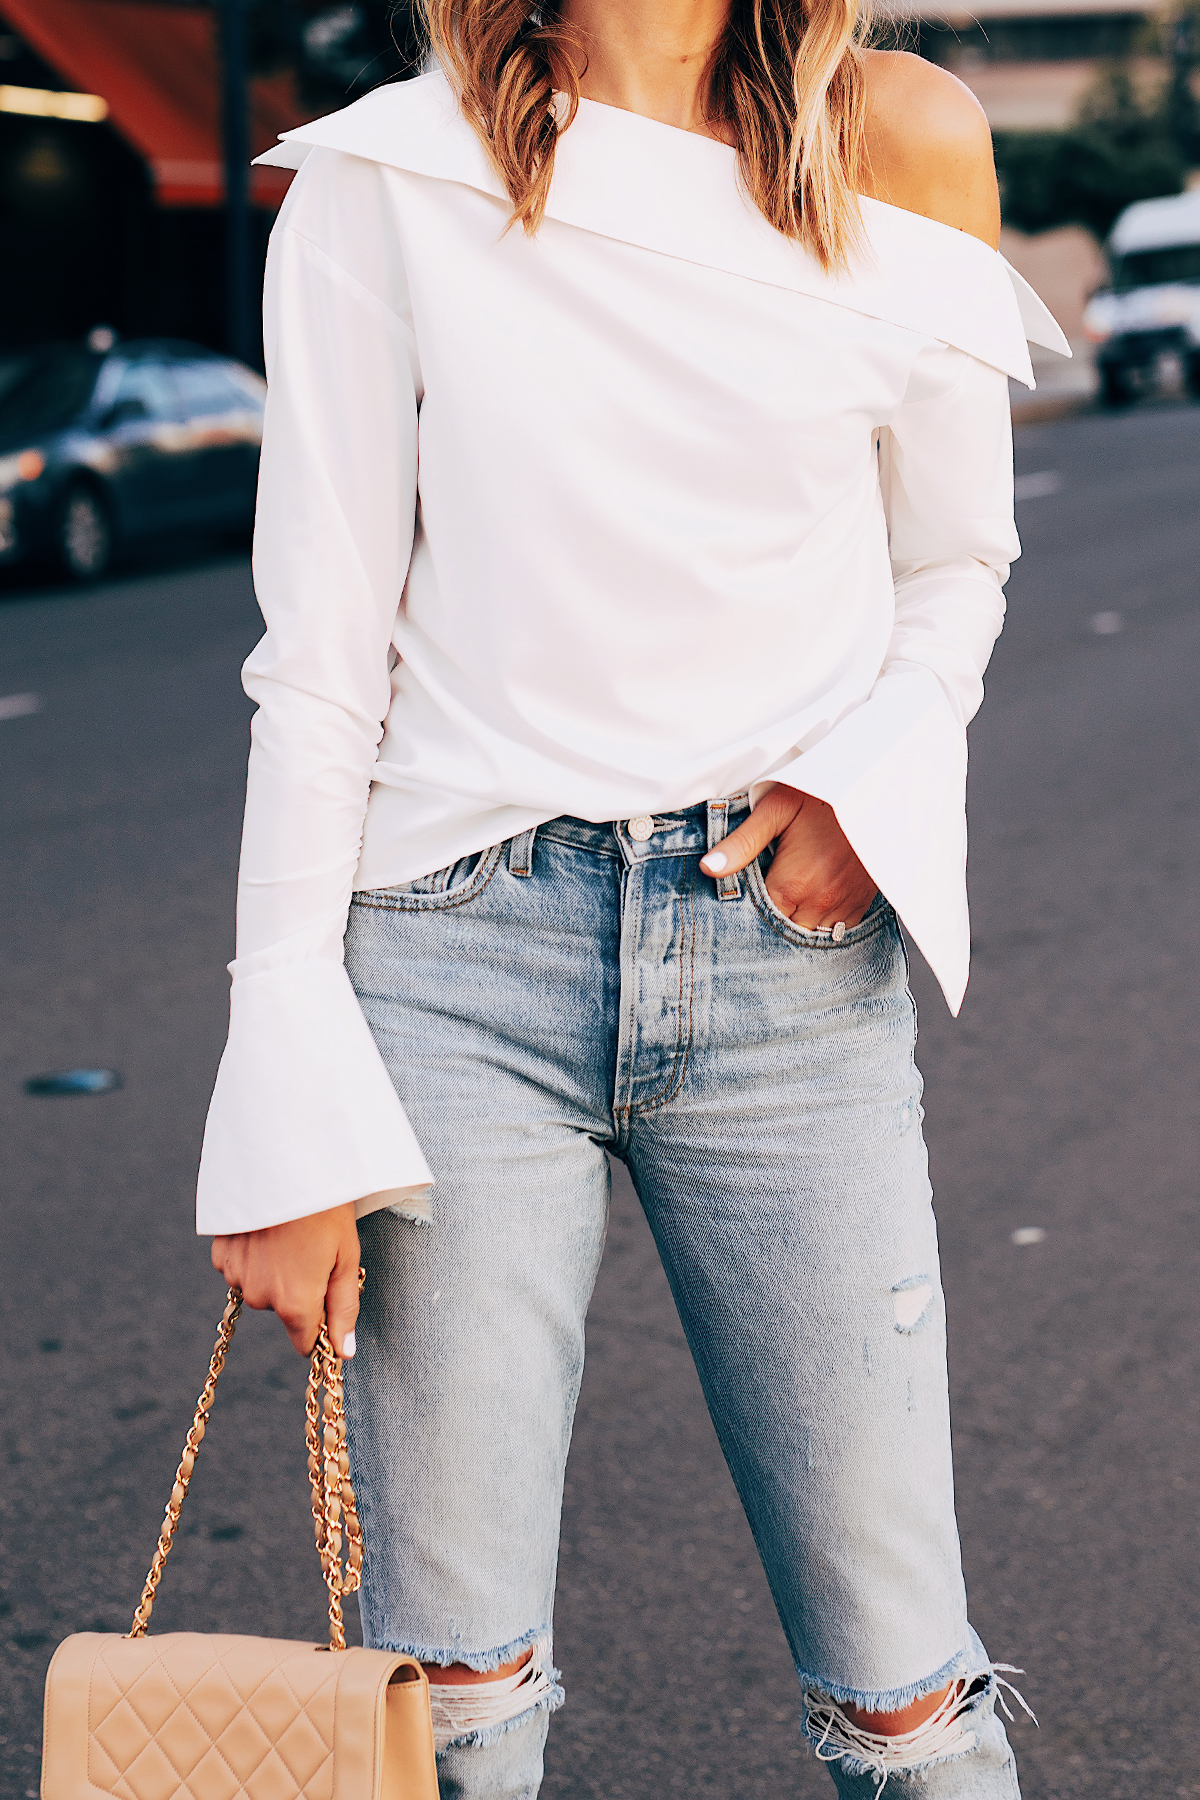 Blonde Woman Wearing White Off the Shoulder Top Ripped Jeans Tan Handbag Fashion Jackson San Diego Fashion Blogger Street Style